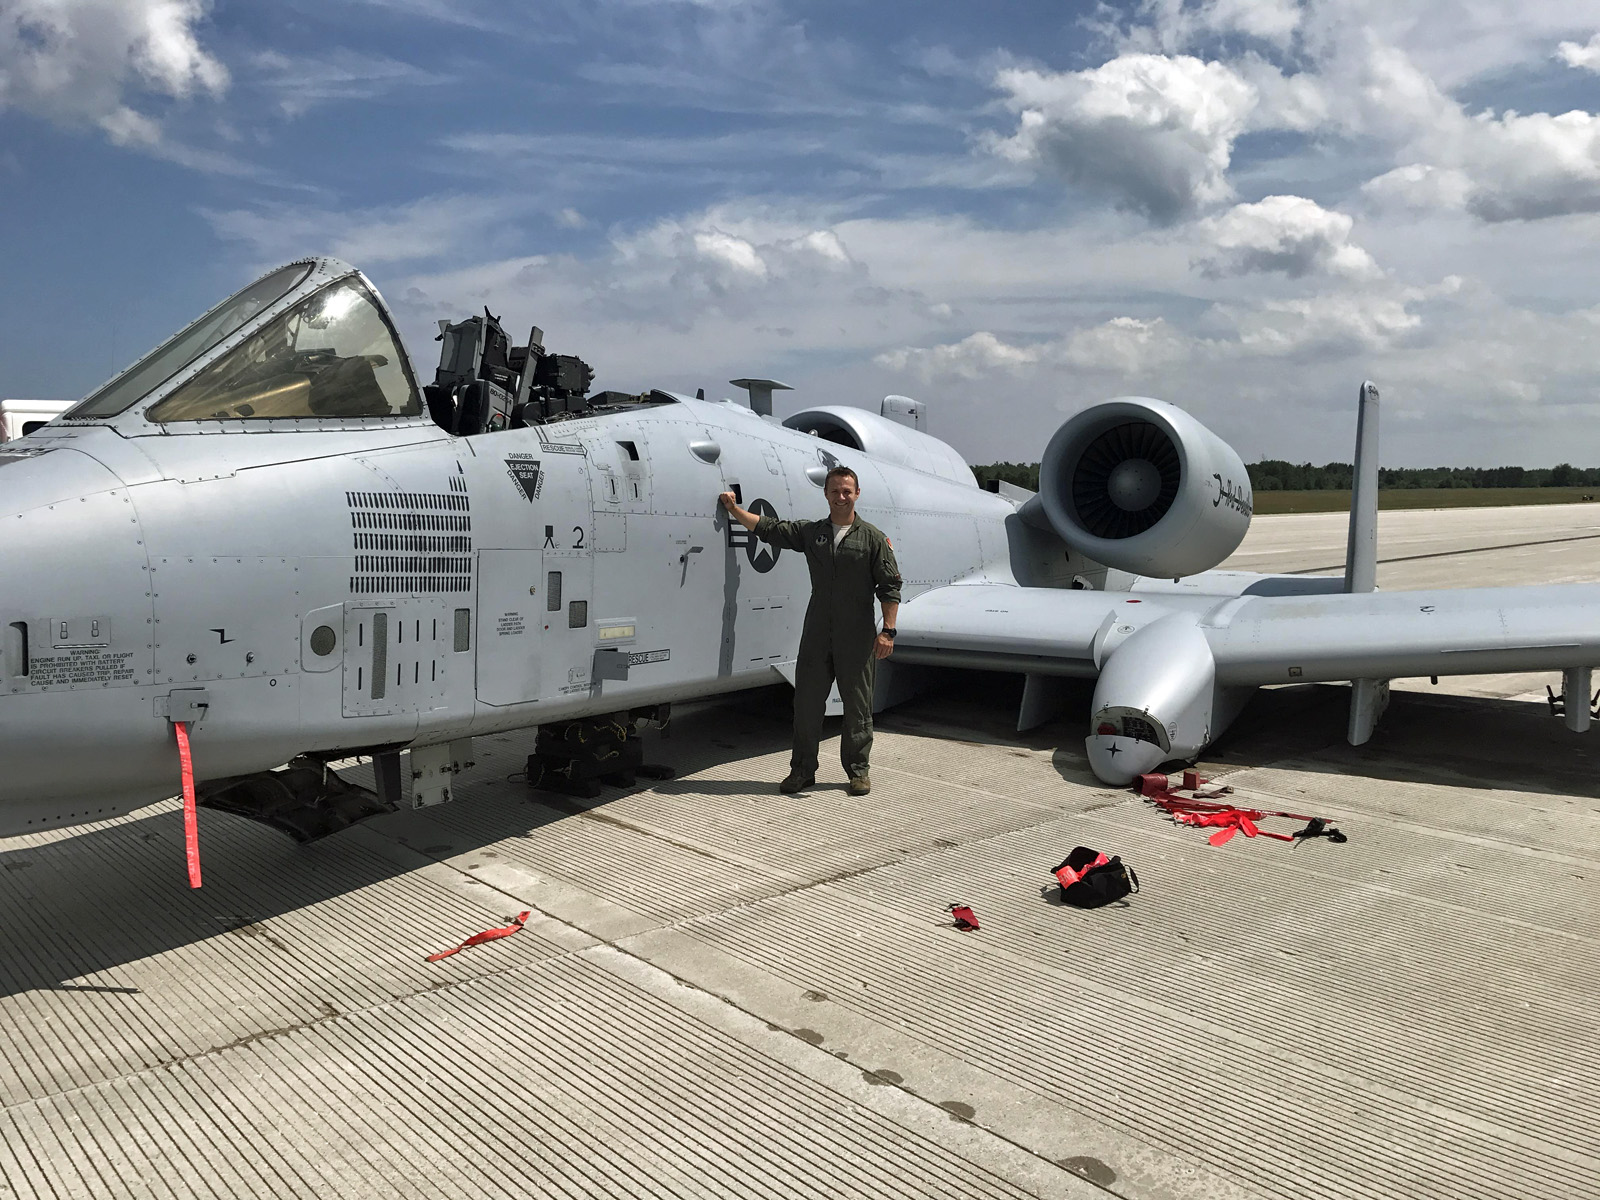 Air Force captain lands A-10 with no canopy, no gear